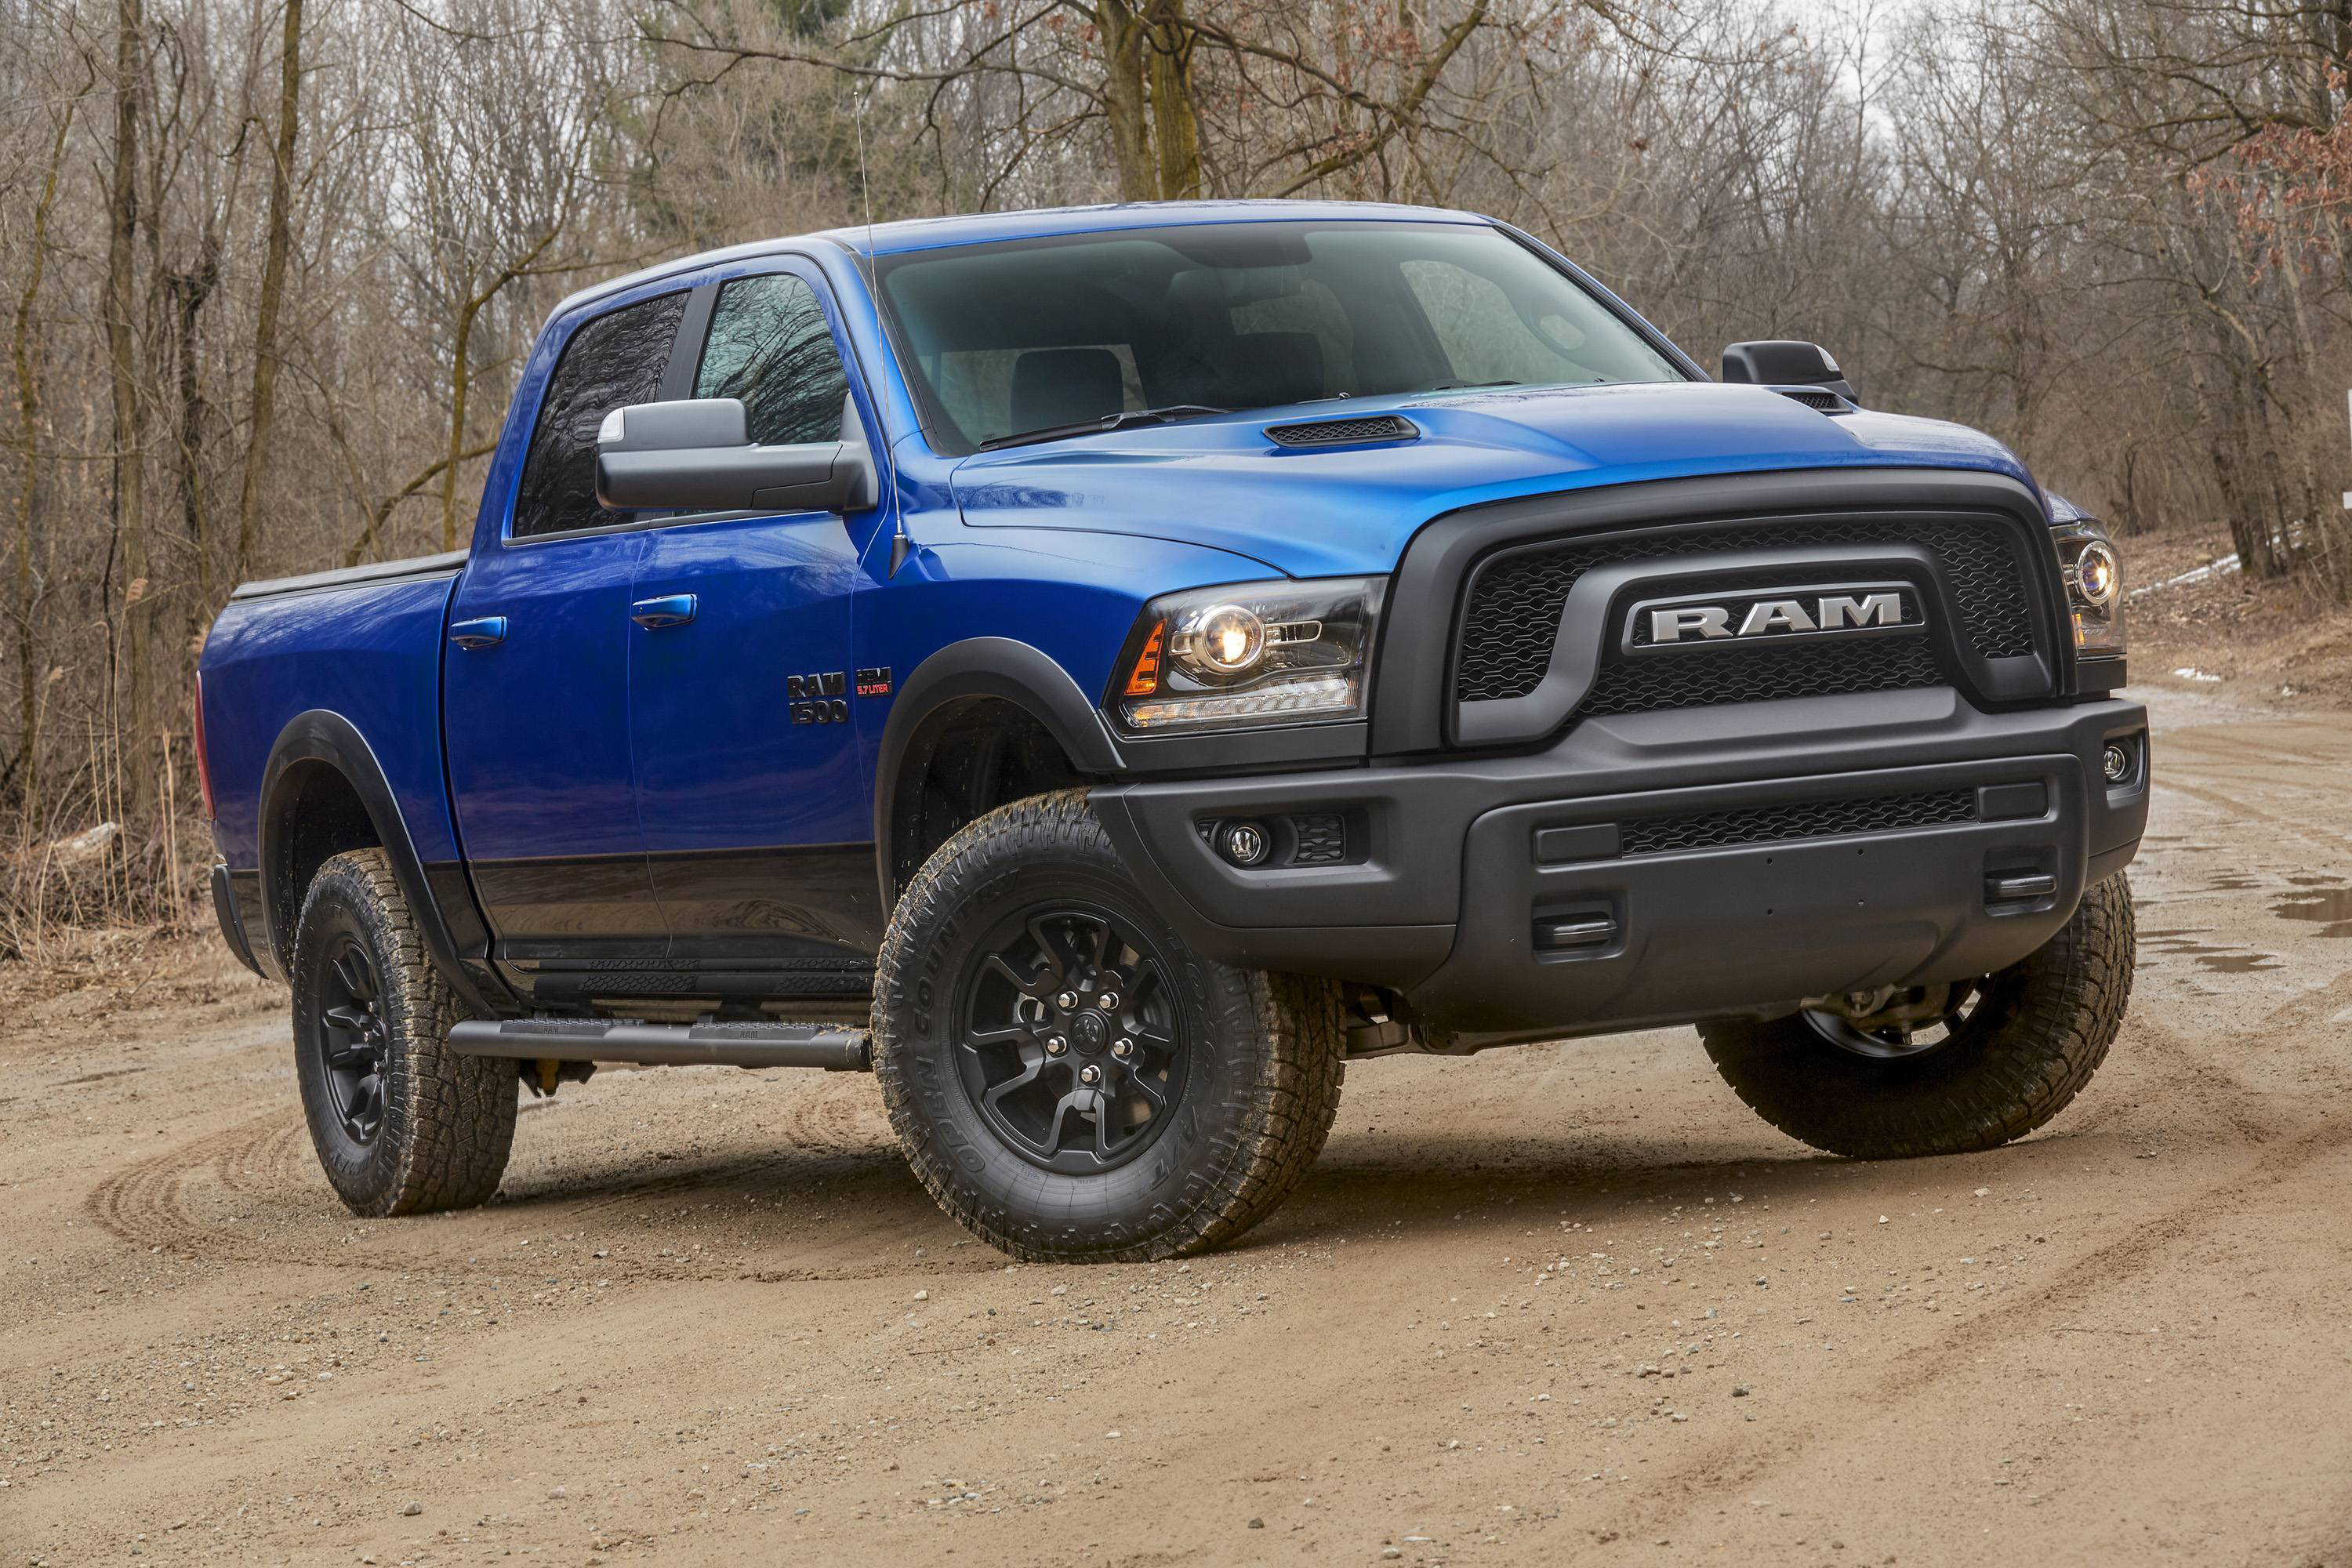 Ram Truck Today Announced Two New Option Packages For The 1500 That Automaker Says Strengthens Brand S Factory Custom Trend And Color Palette